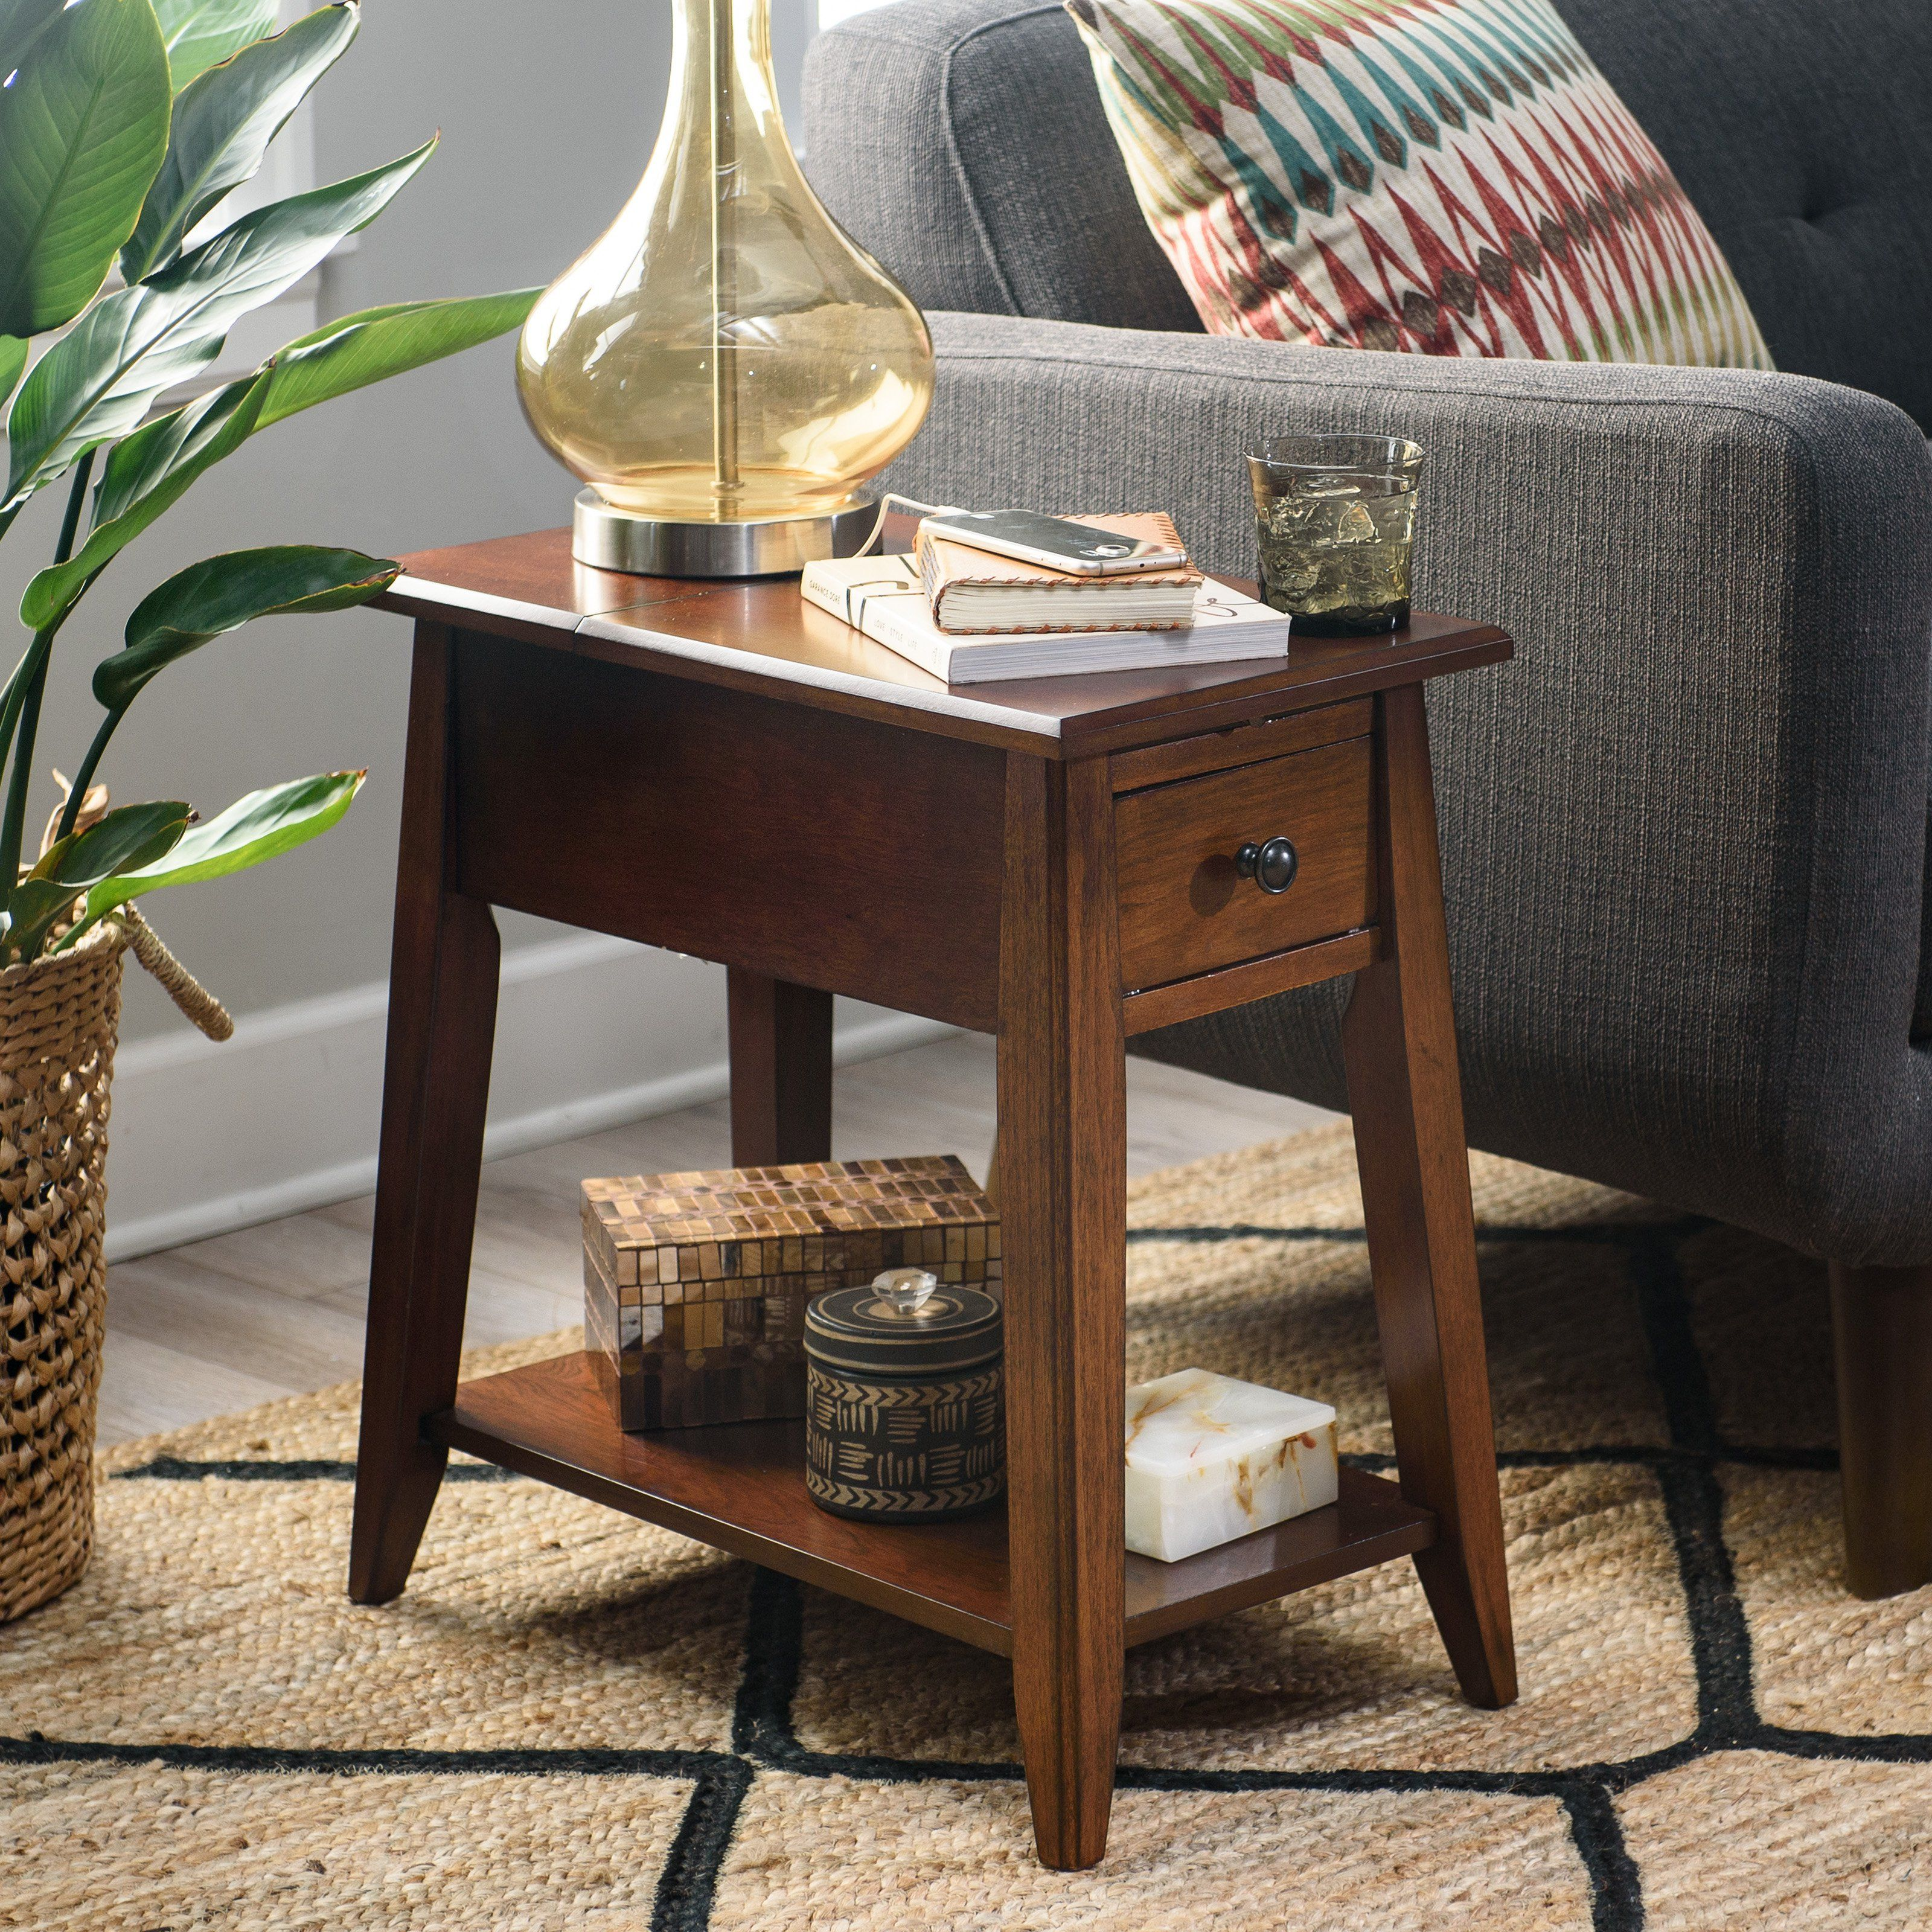 Finley Home Davis Chairside Table With Power Outlet Walnut From Hayneedle Com Chair Side Rustic End Tables Finish Furniture